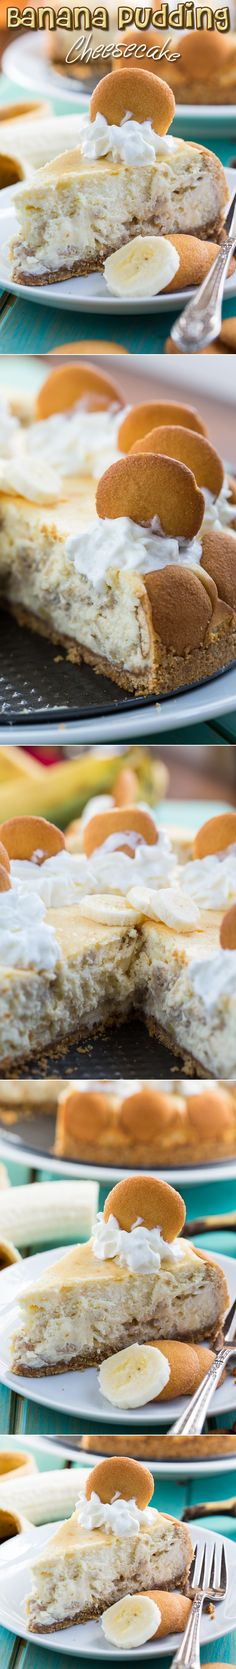 Banana Pudding Cheesecake: This decadent dessert flavored with fresh banana is a combination of two favorites...cheesecake and banana pudding. The filling's rich and creamy, with ~just~ the right amount of banana flavor. Top it all off with whipped cream and vanilla wafers & you have a showstopper southern dessert that would be perfect to serve on any occasion!